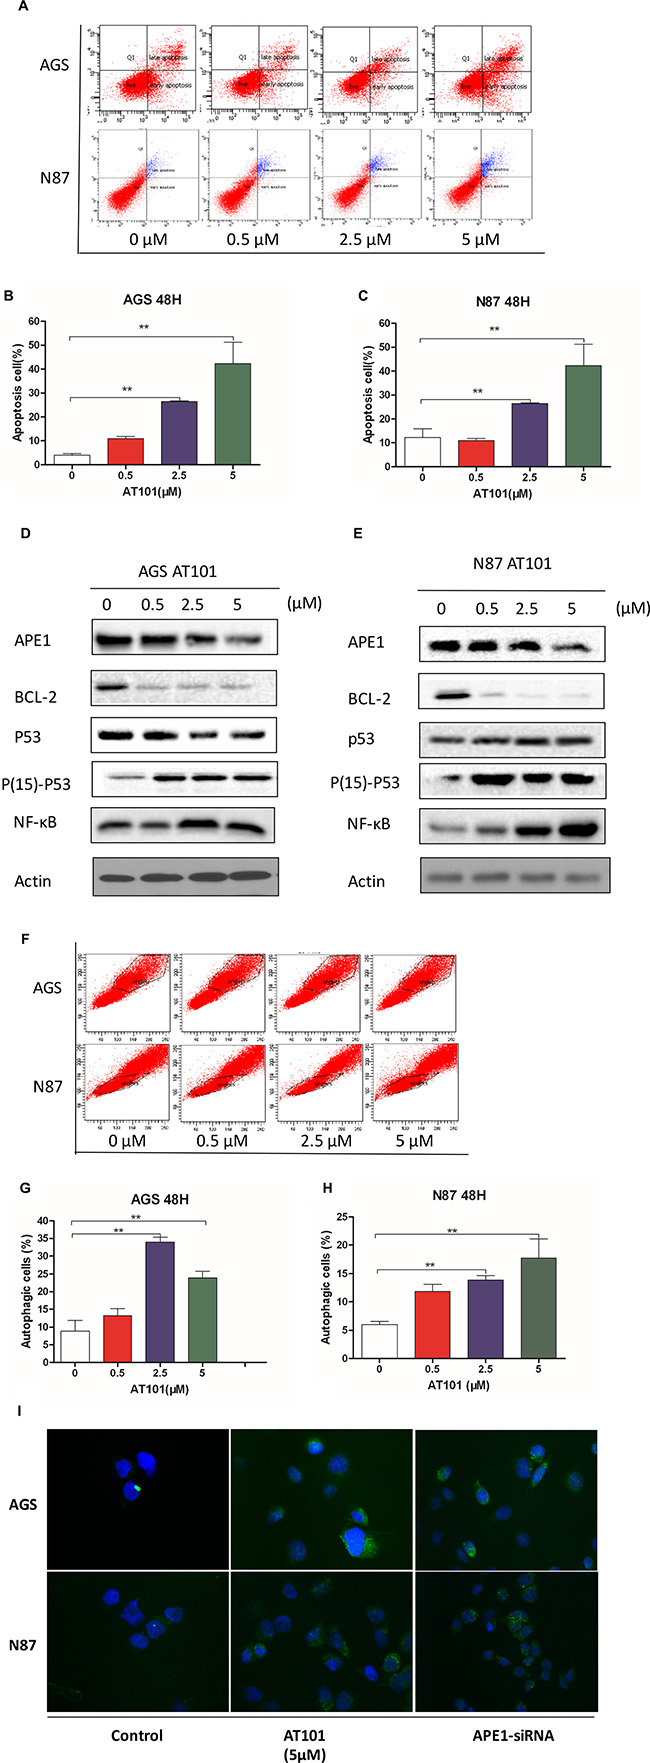 Inhibition of APE1 by AT101 promotes apoptosis and autophagy of gastric cancer cells.